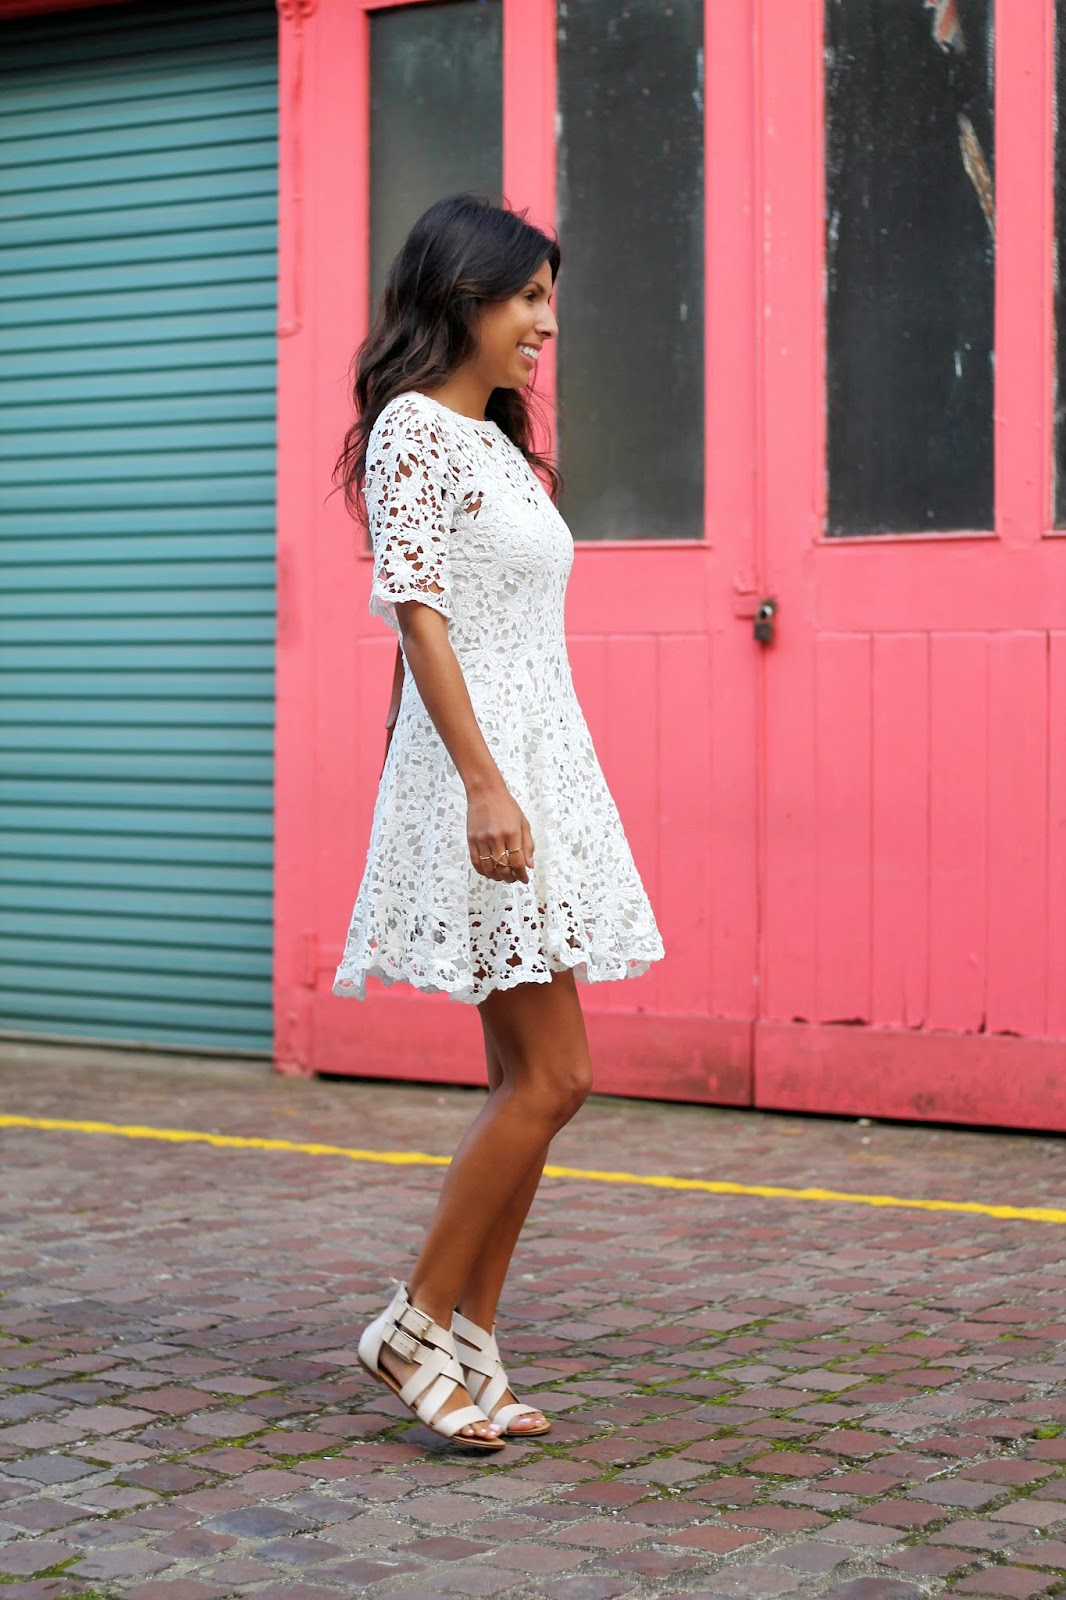 the stylist la, nightcap crochet dress, white after labor day, sole society accessories, summer outfit